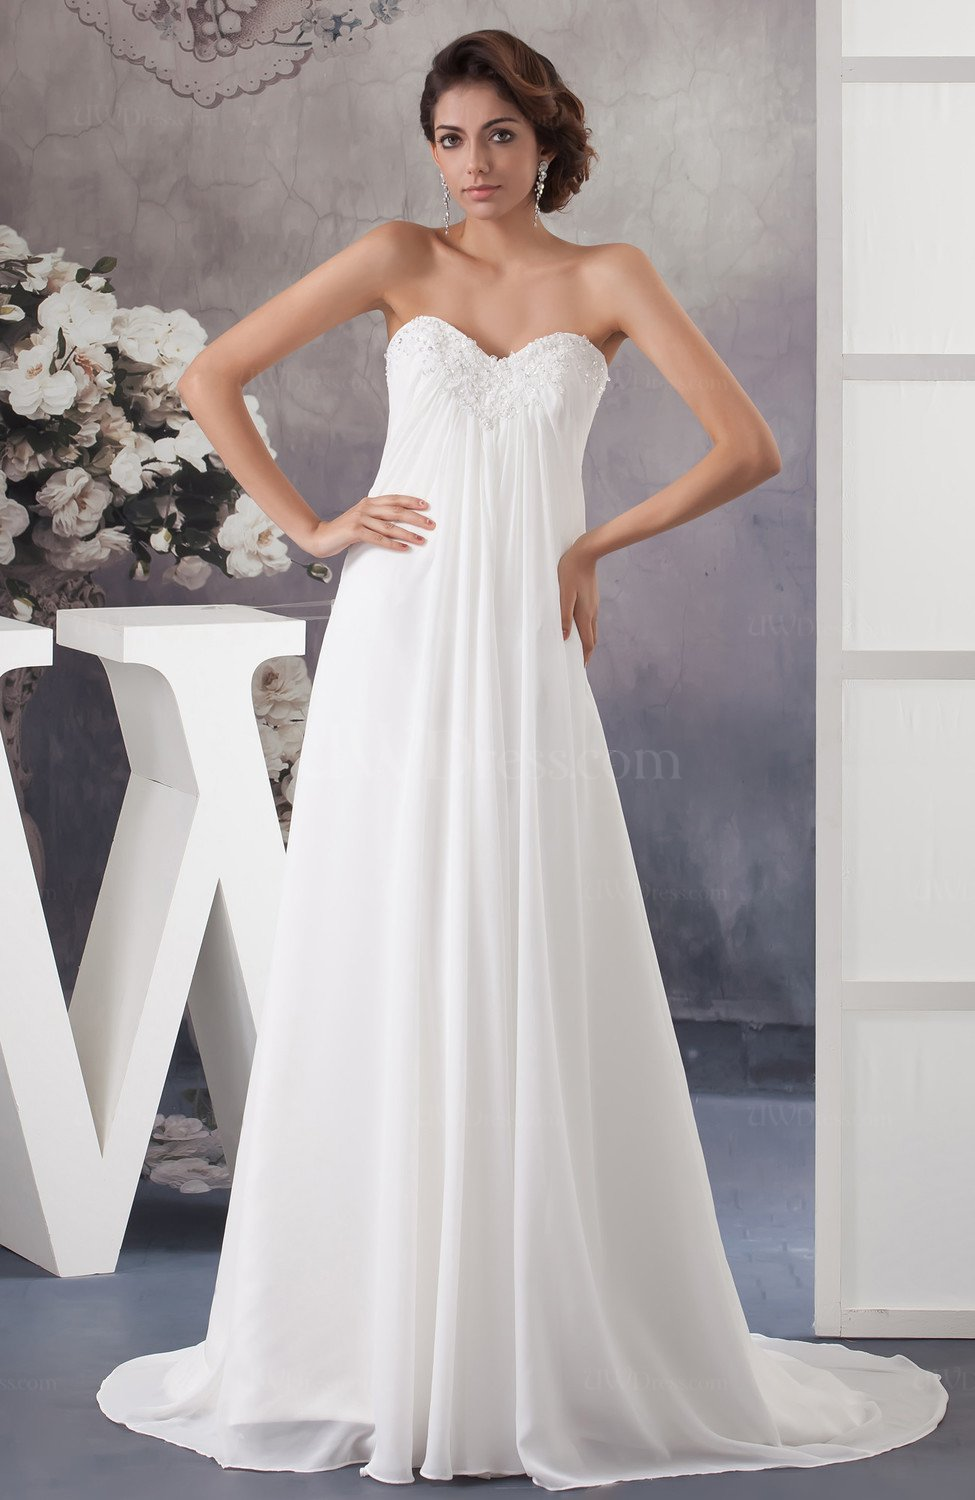 Allure Bridal Gowns Inexpensive Petite Winter Informal